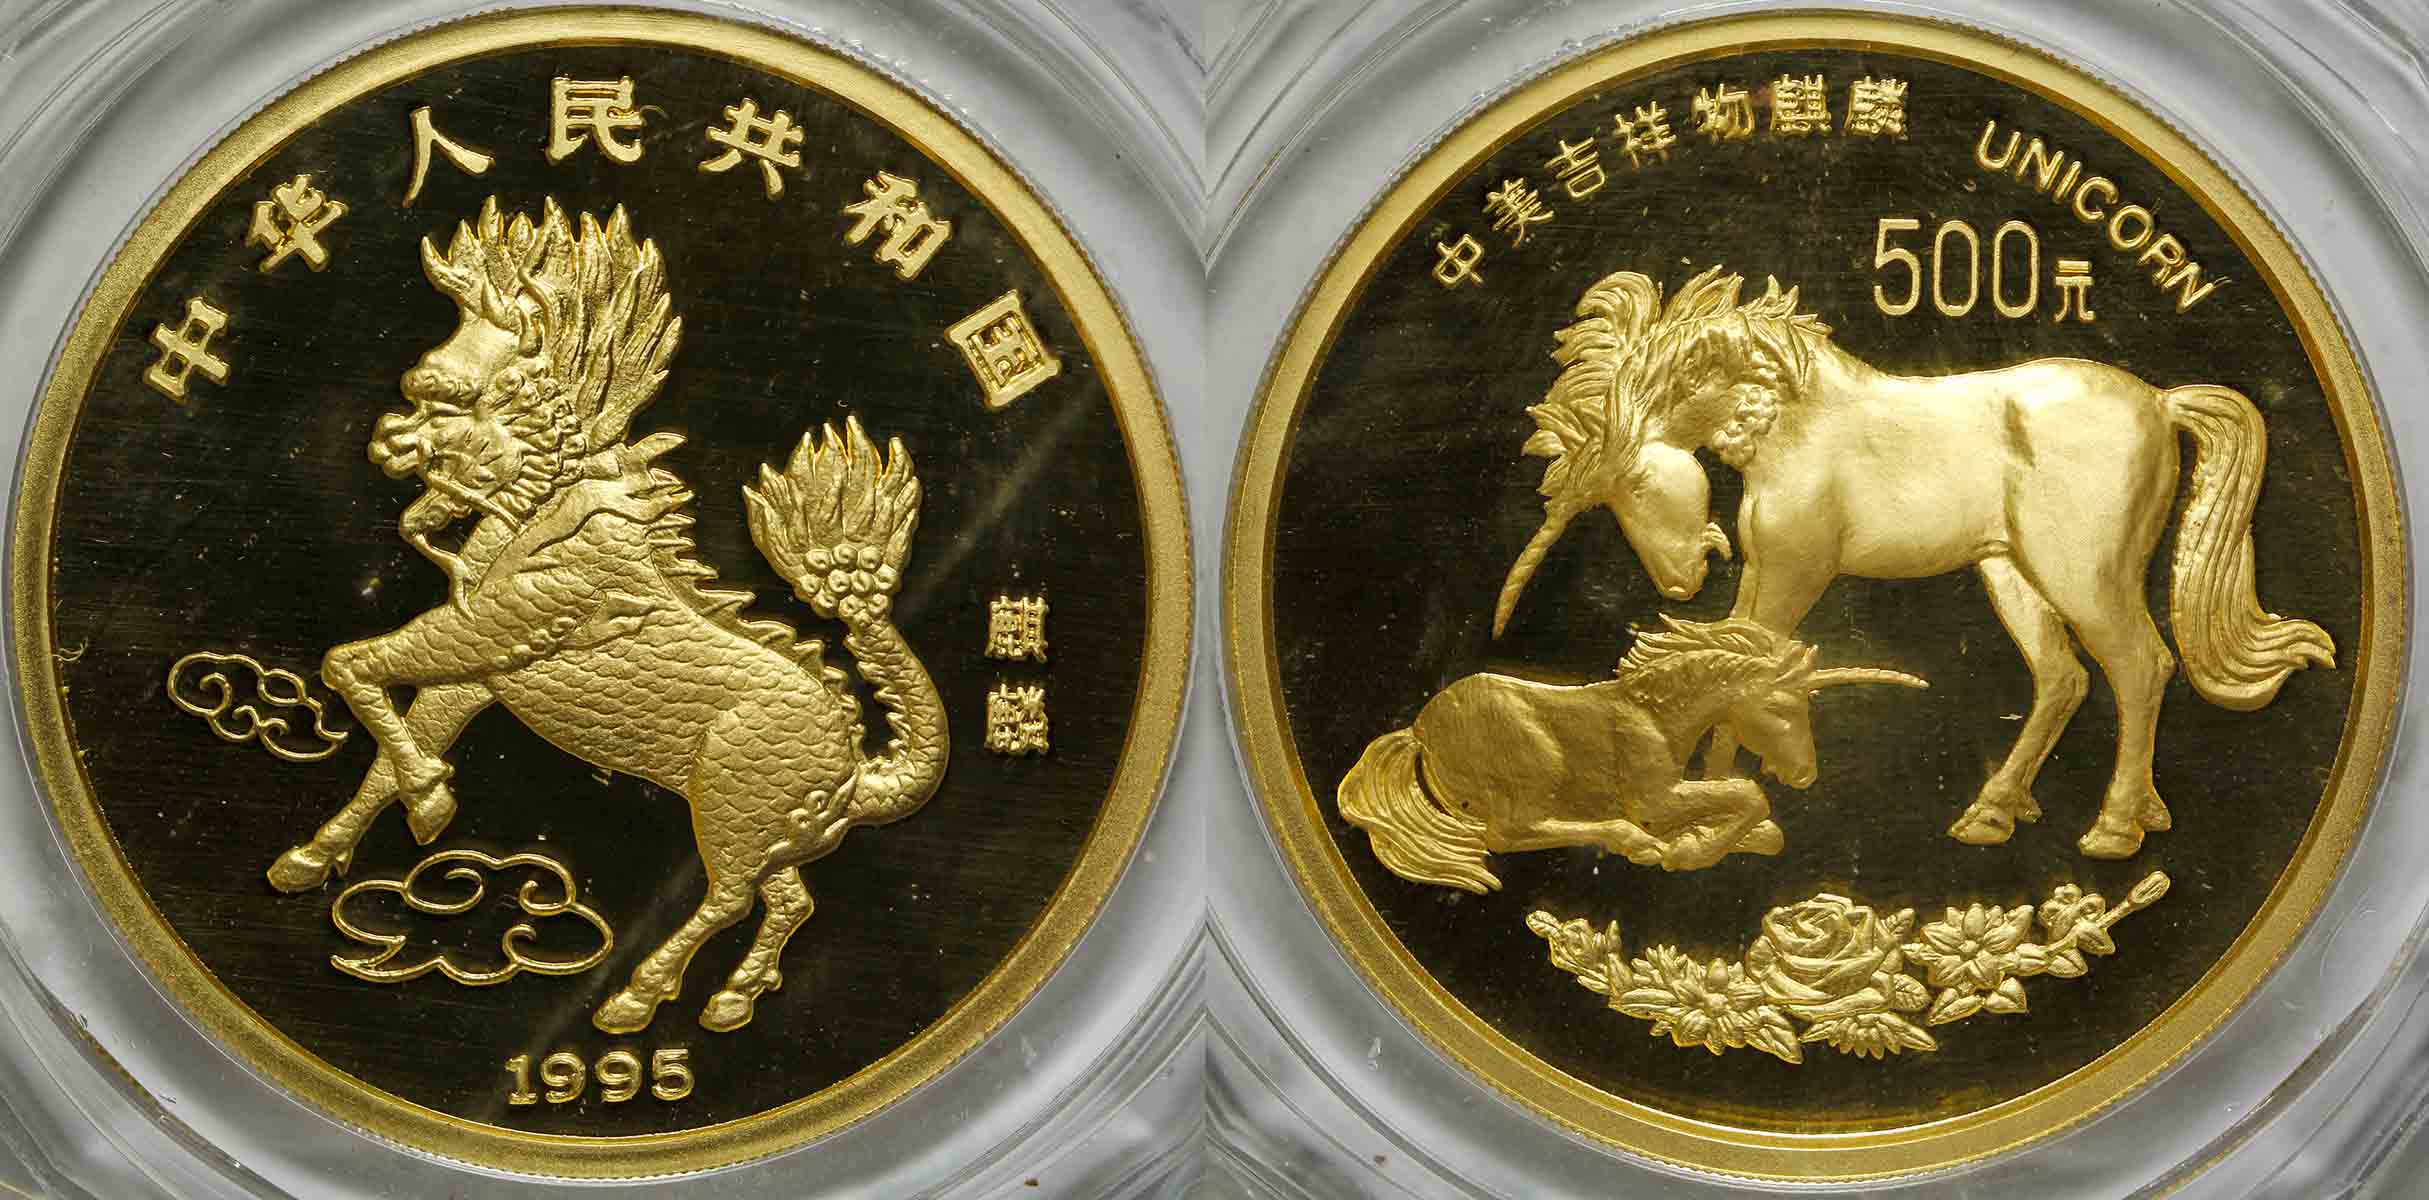 Beloved Unicorn 5-Ounce Gold